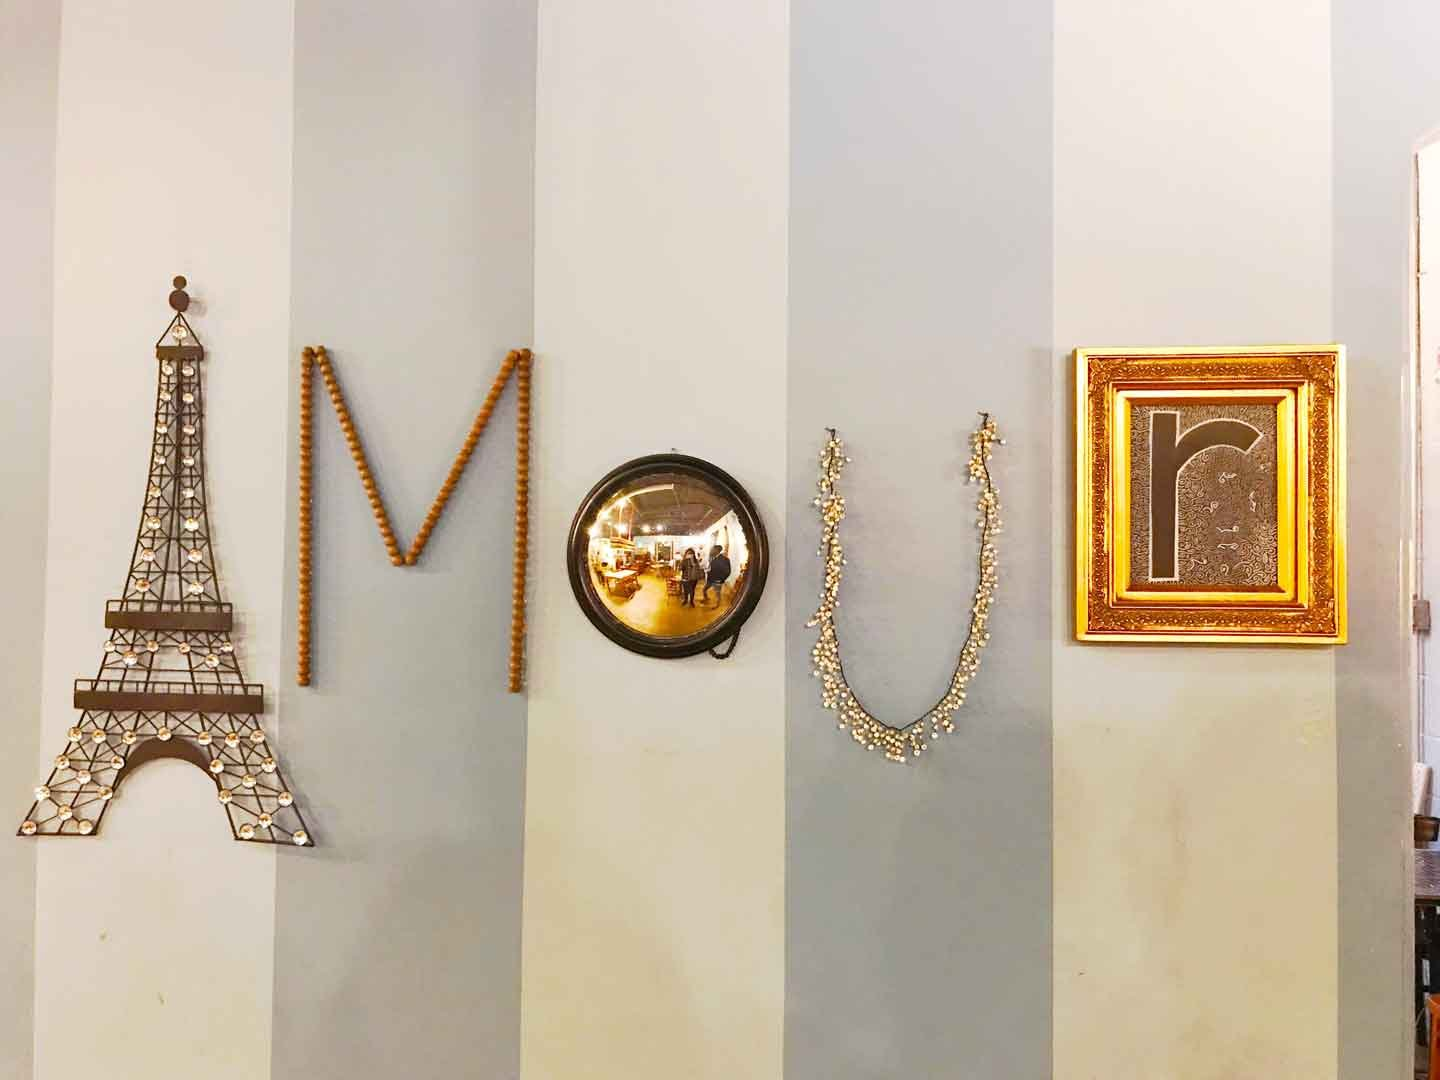 Amelie's French Bakery Wall art photo